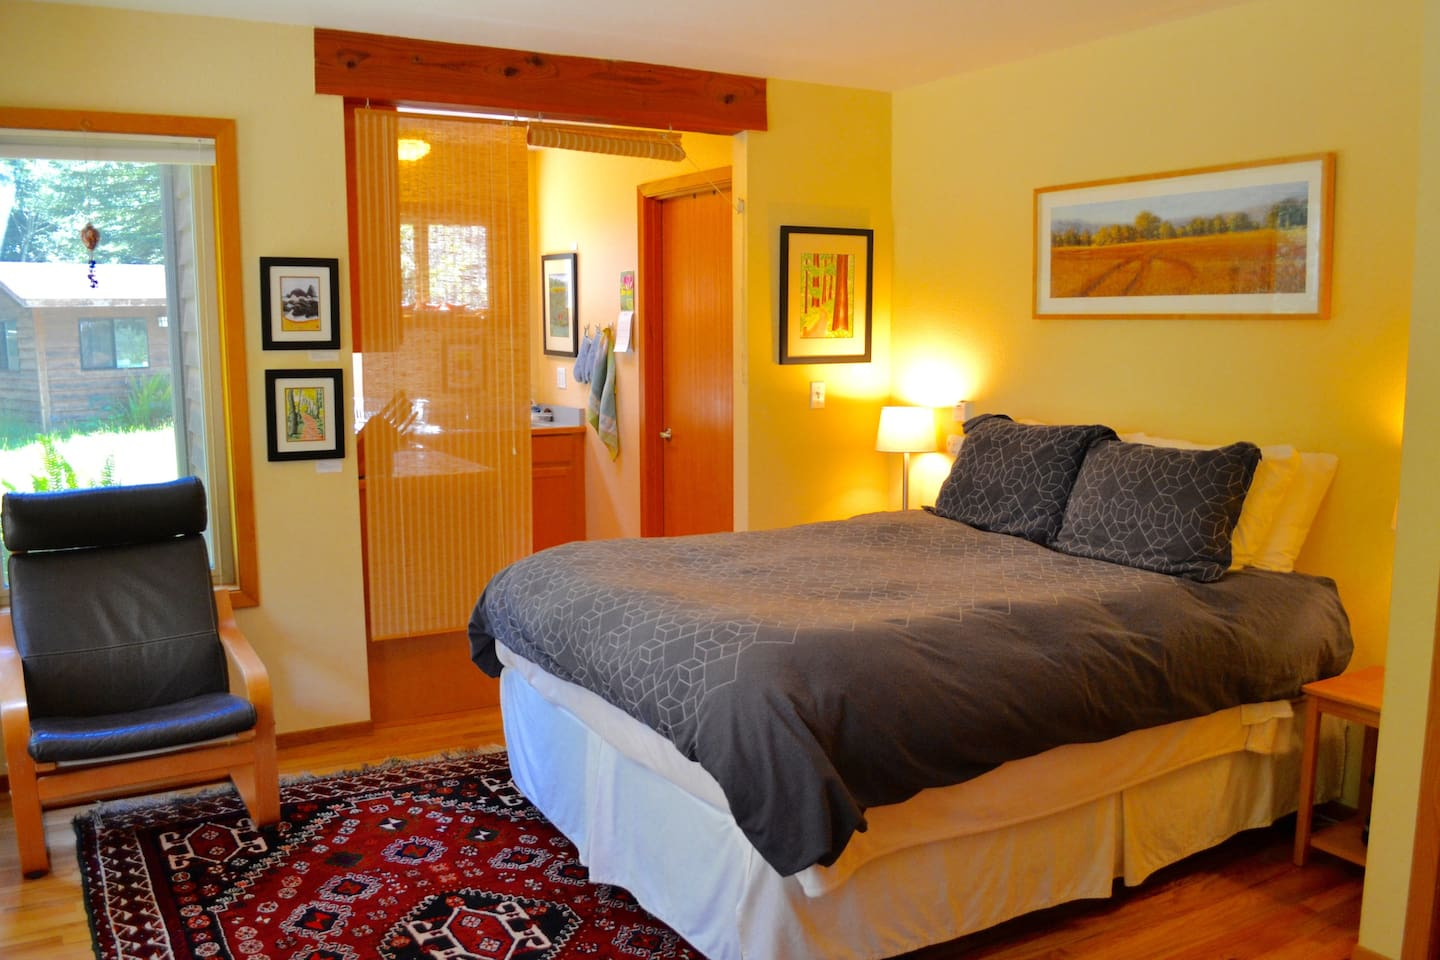 This peaceful studio apartment in the redwoods will leave you feeling relaxed and refreshed.